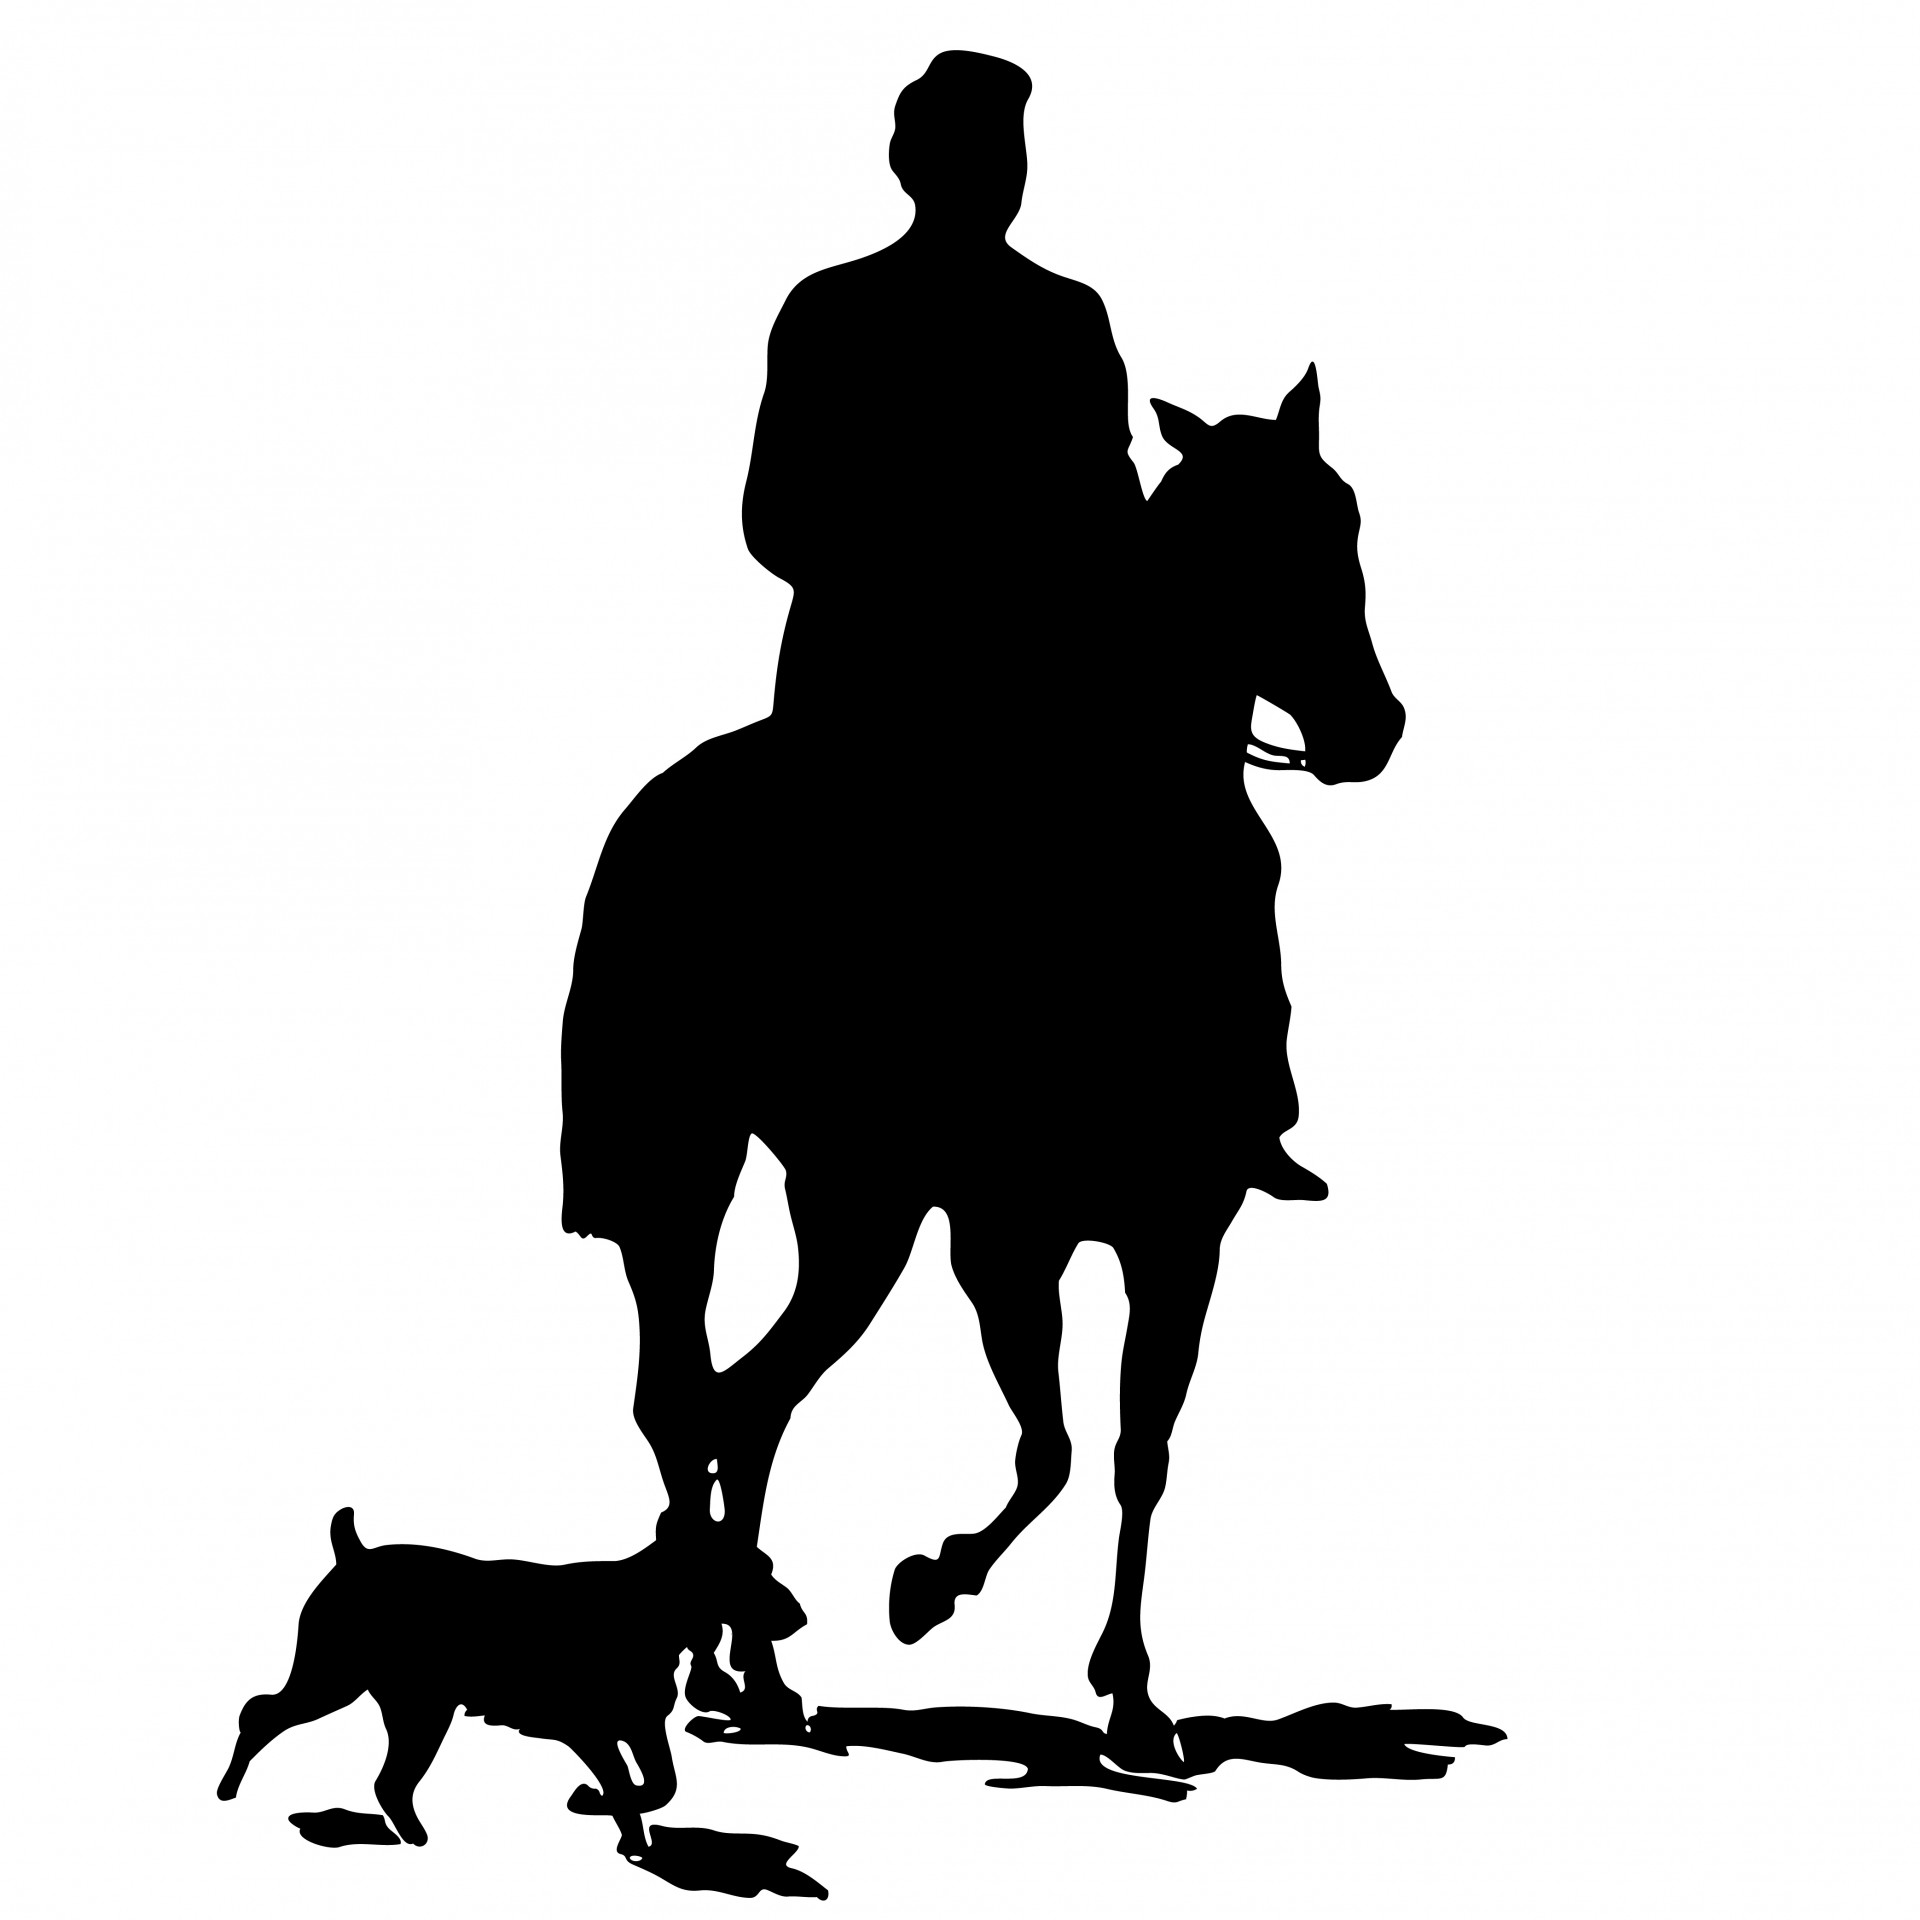 1920x1920 Horse Amp Dog Silhouette Clipart Free Stock Photo